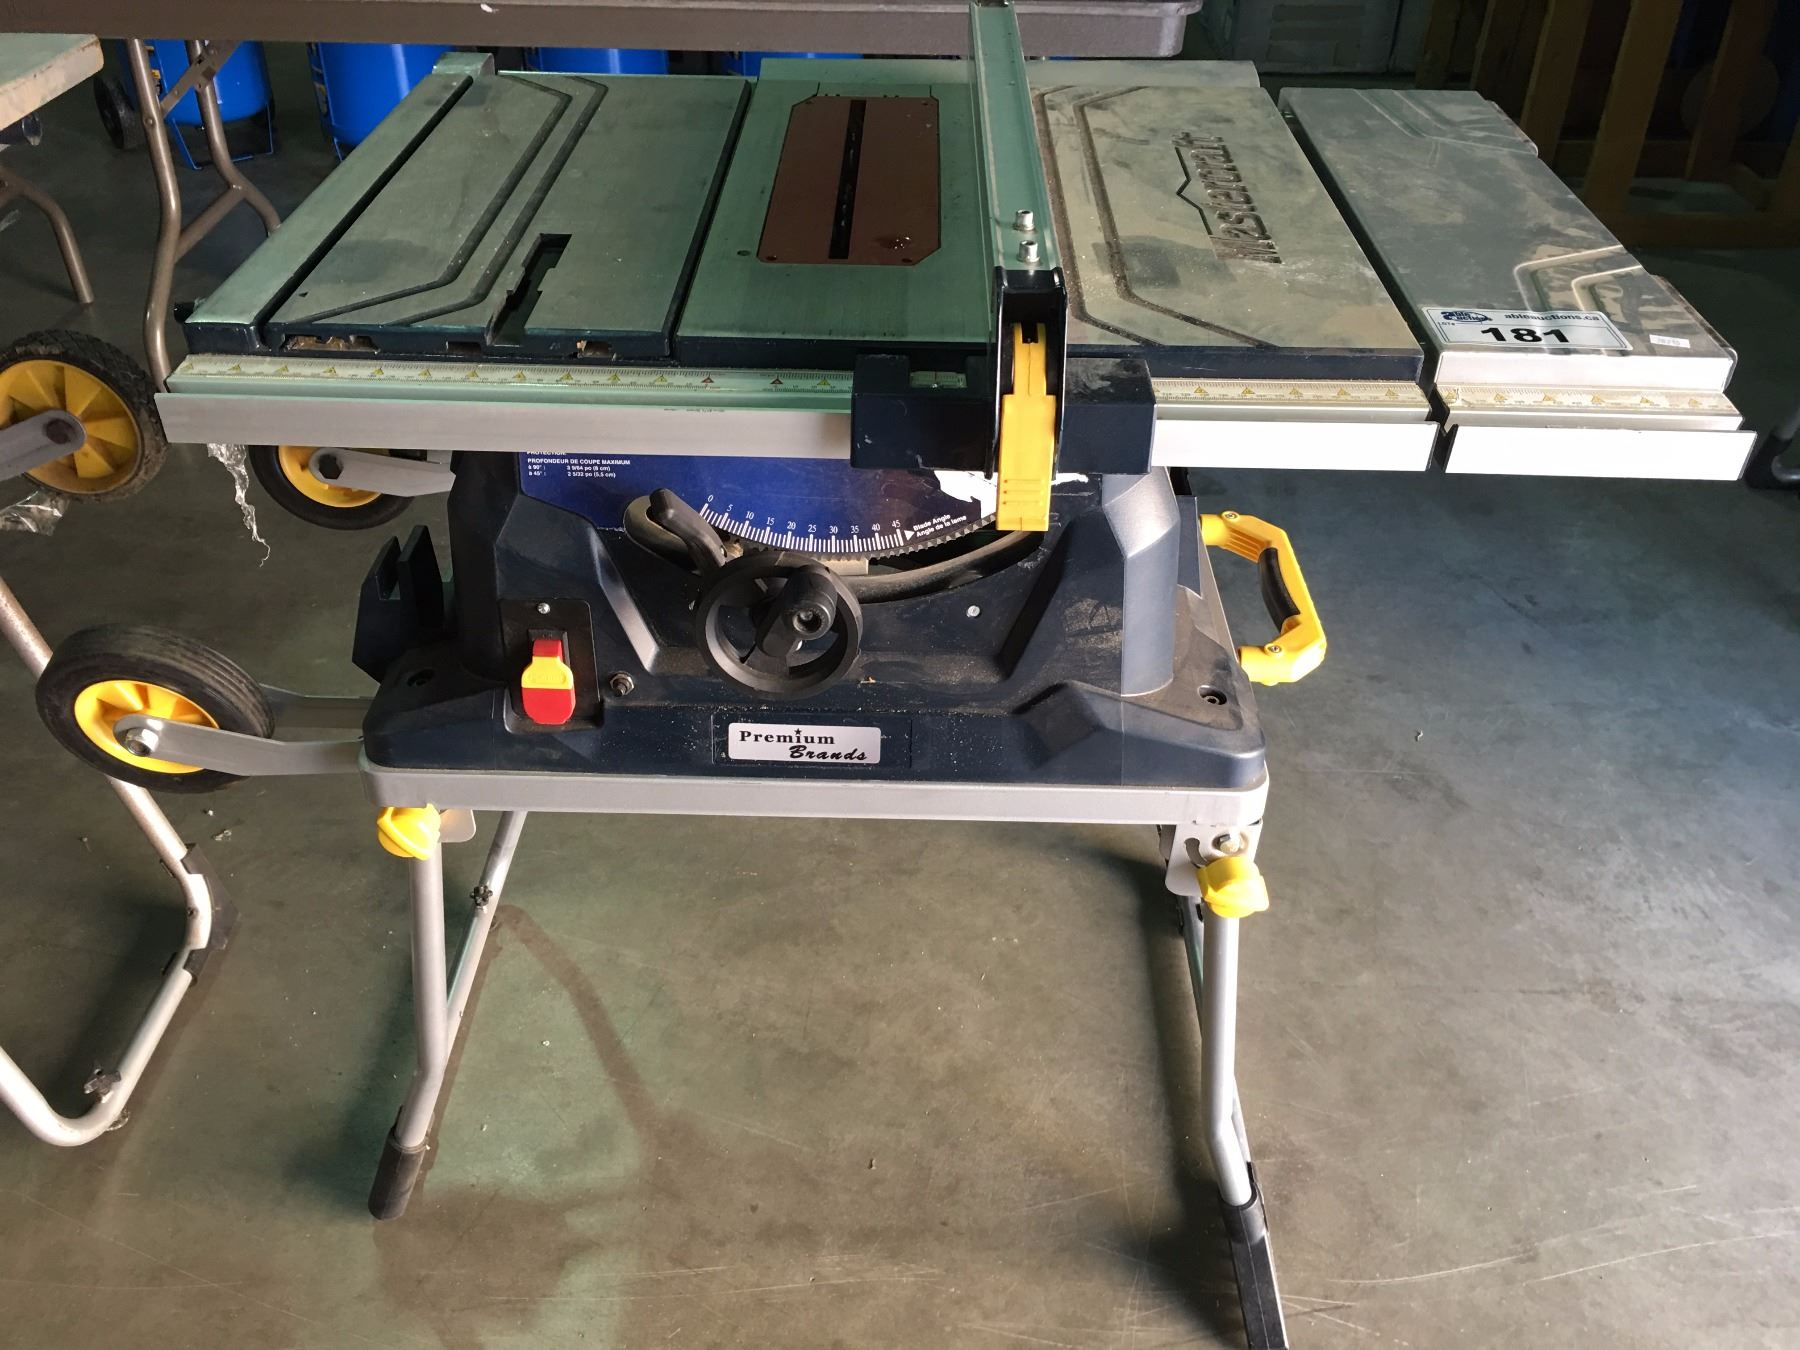 Mastercraft 10 table saw diagram electrical work wiring diagram mastercraft 10 table saw with fold roll stand some parts rh liveauctionworld com mastercraft 10 table saw replacement parts mastercraft 10 inch table saw keyboard keysfo Image collections